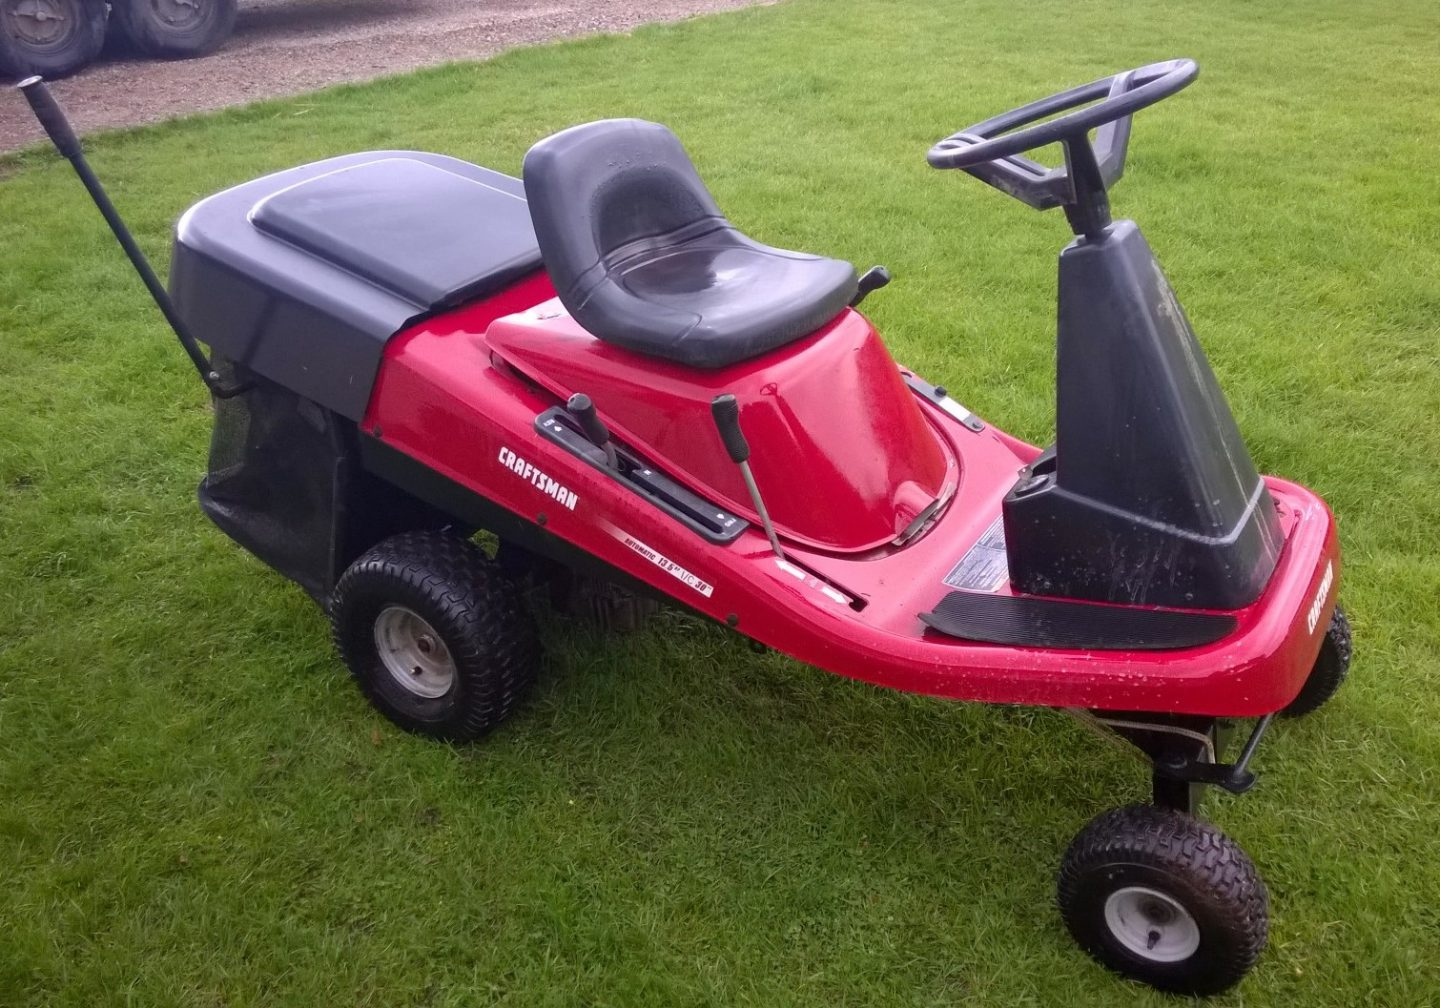 Craftsman mid engine mower